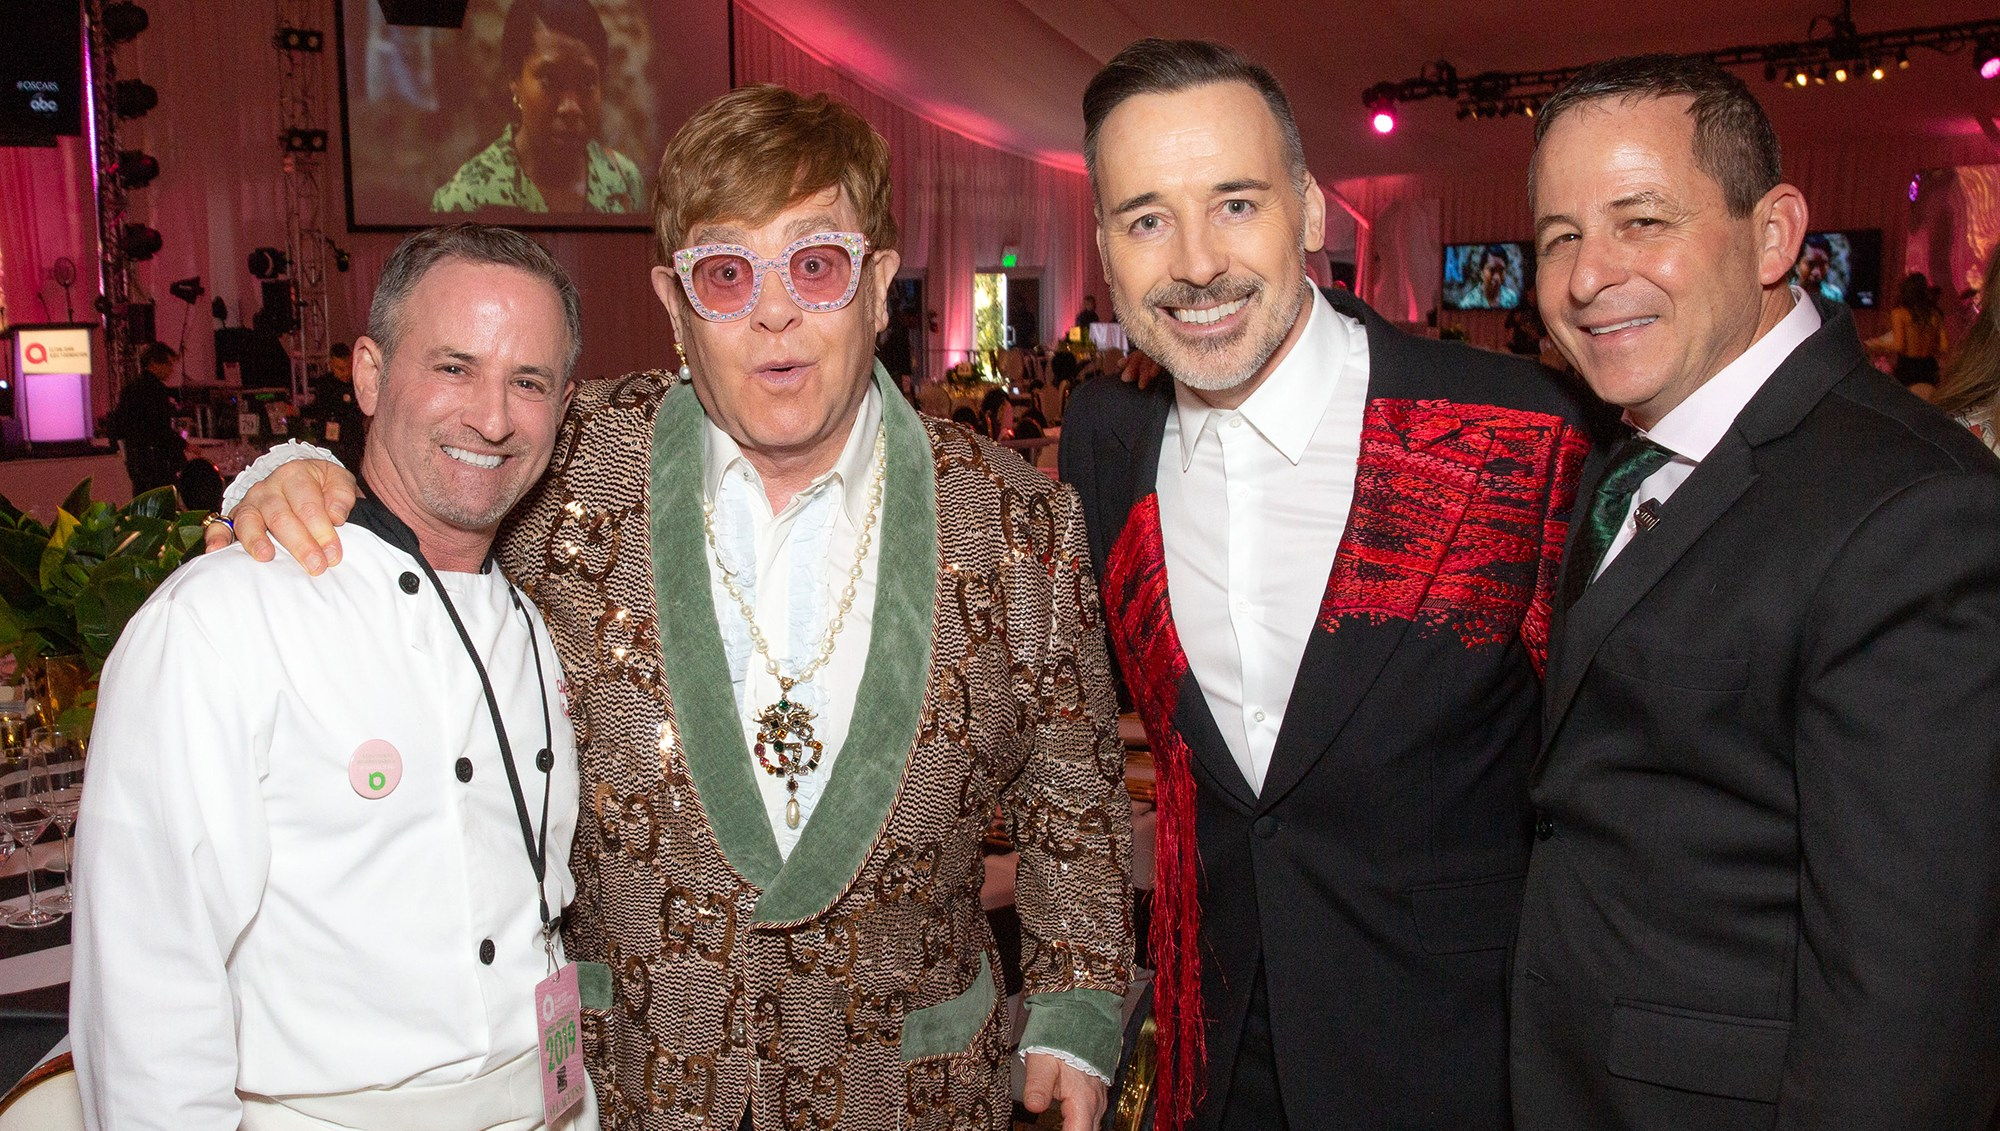 Inside Elton John's Oscar Viewing Party With Chef Wayne Elias: 'It's the Busiest Night of the Year'